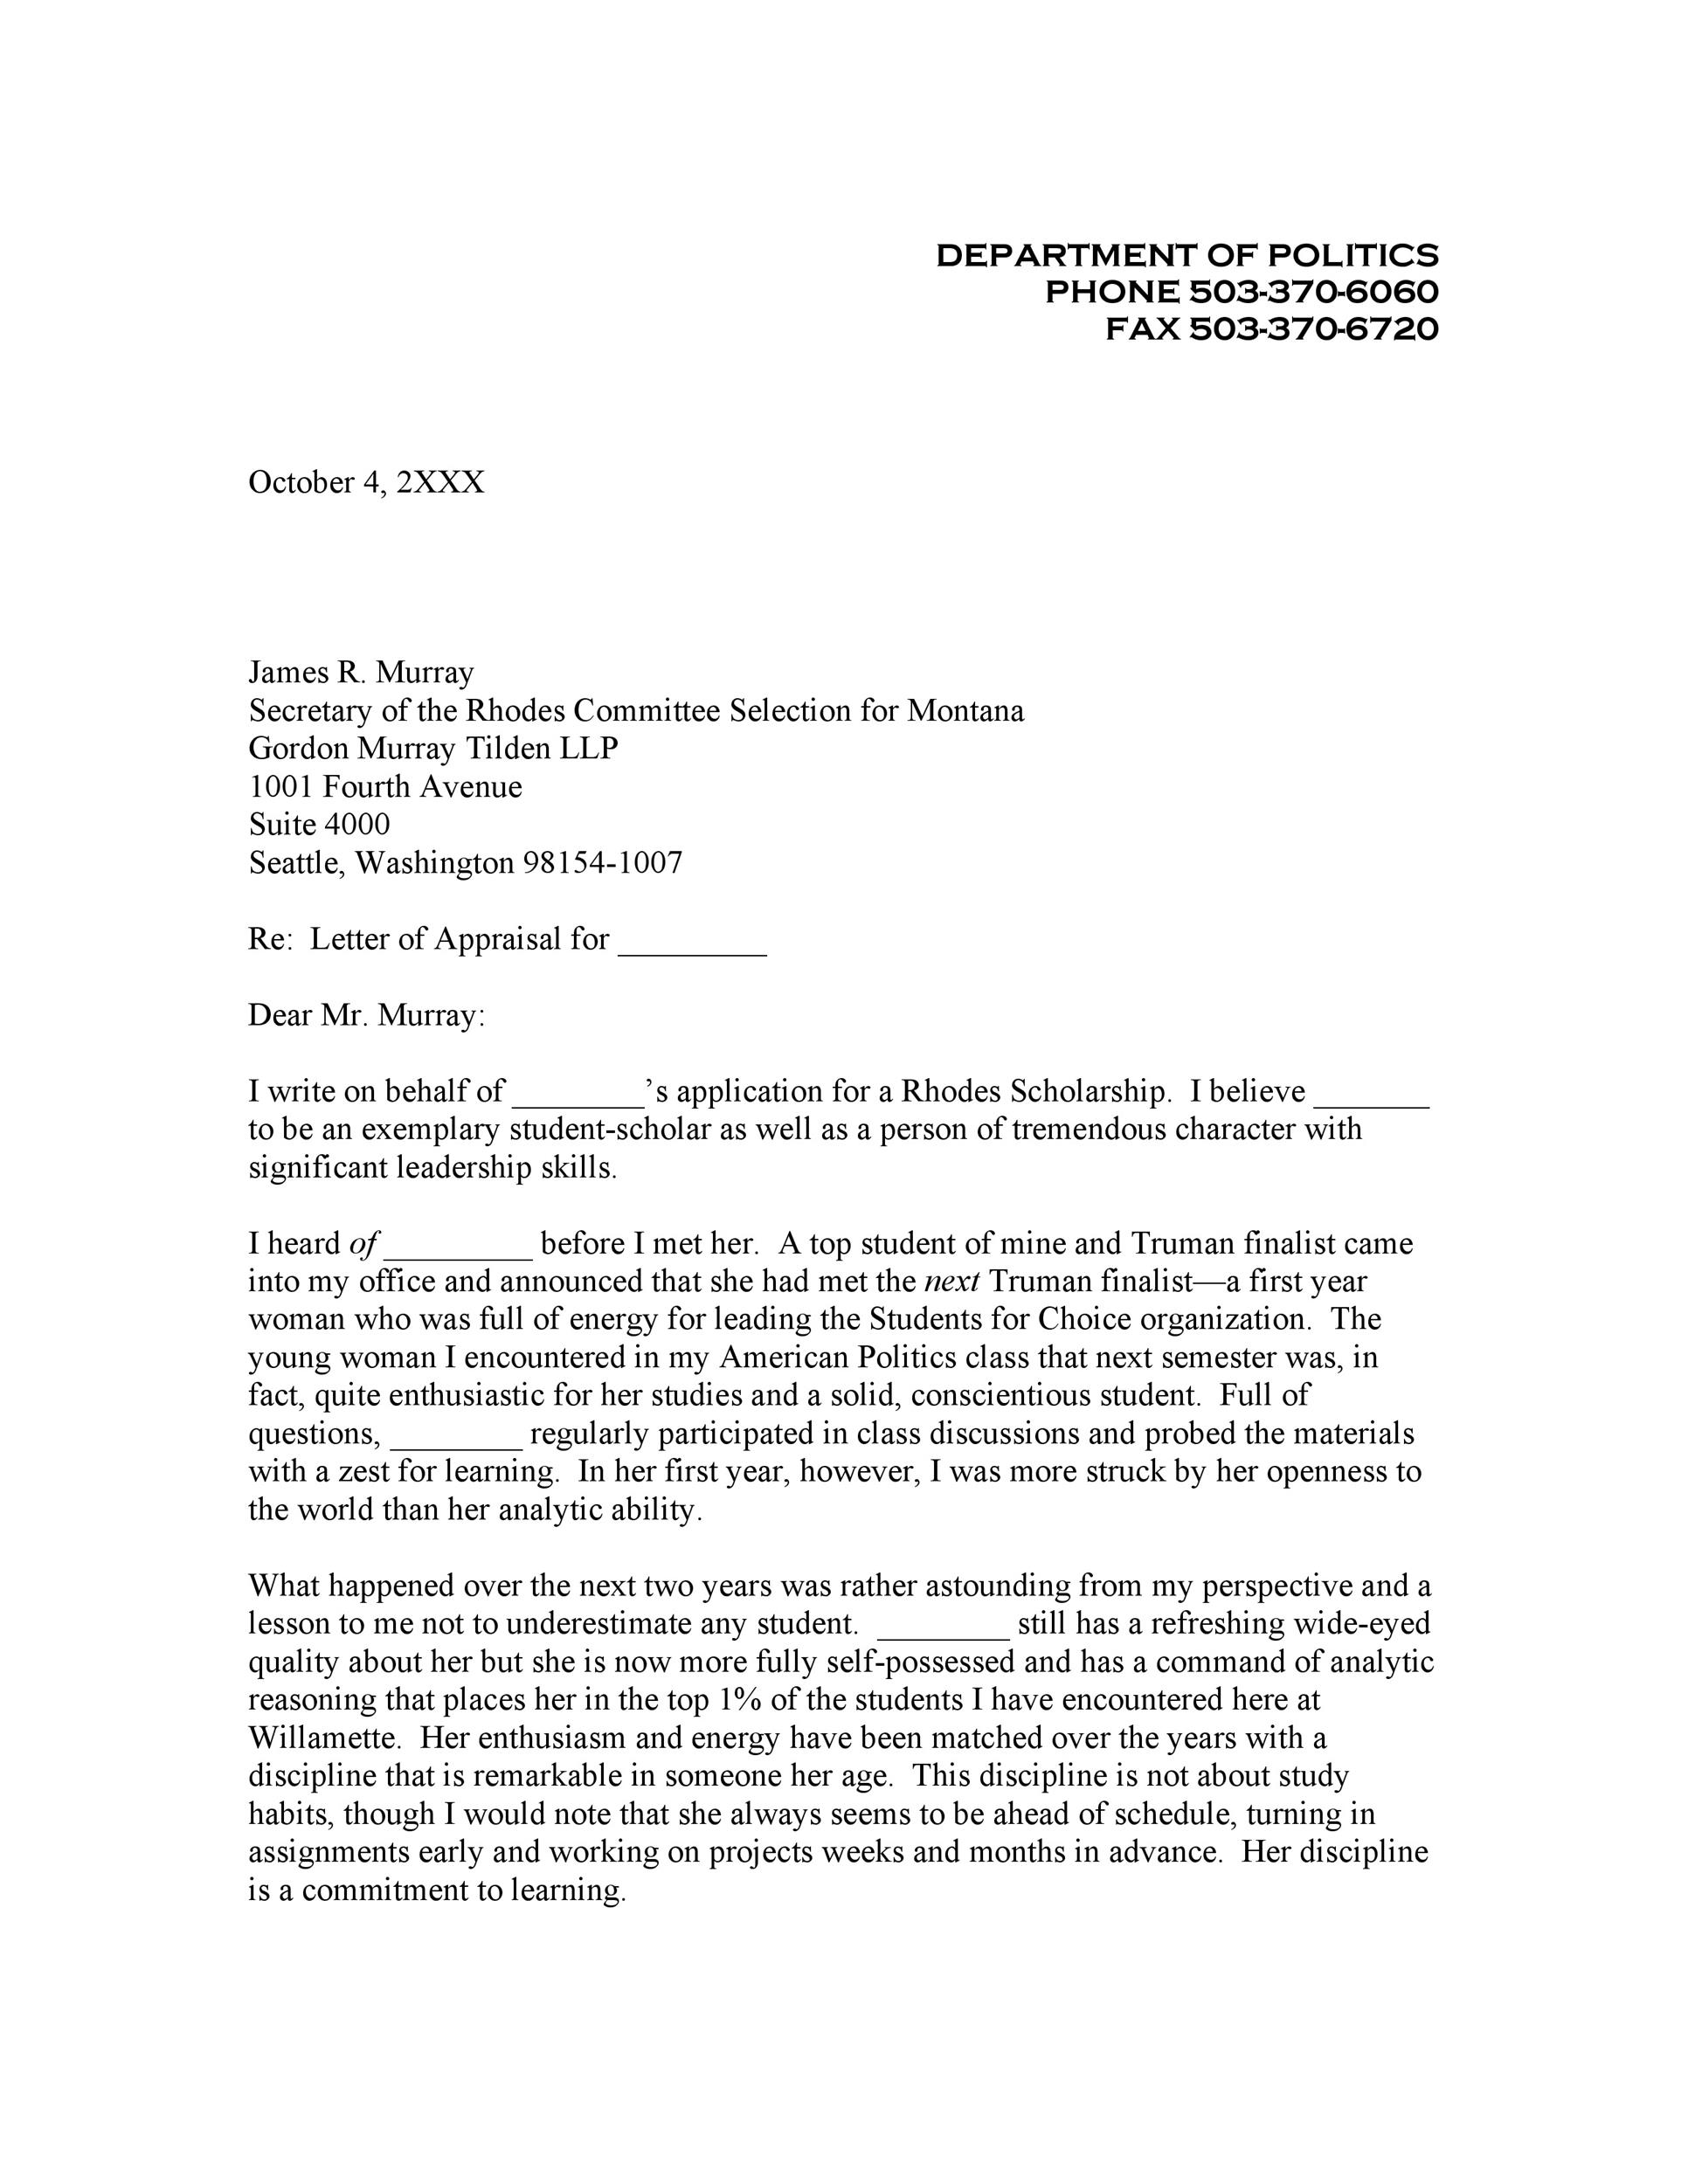 Free Recommendation Letter From Teacher Template 24